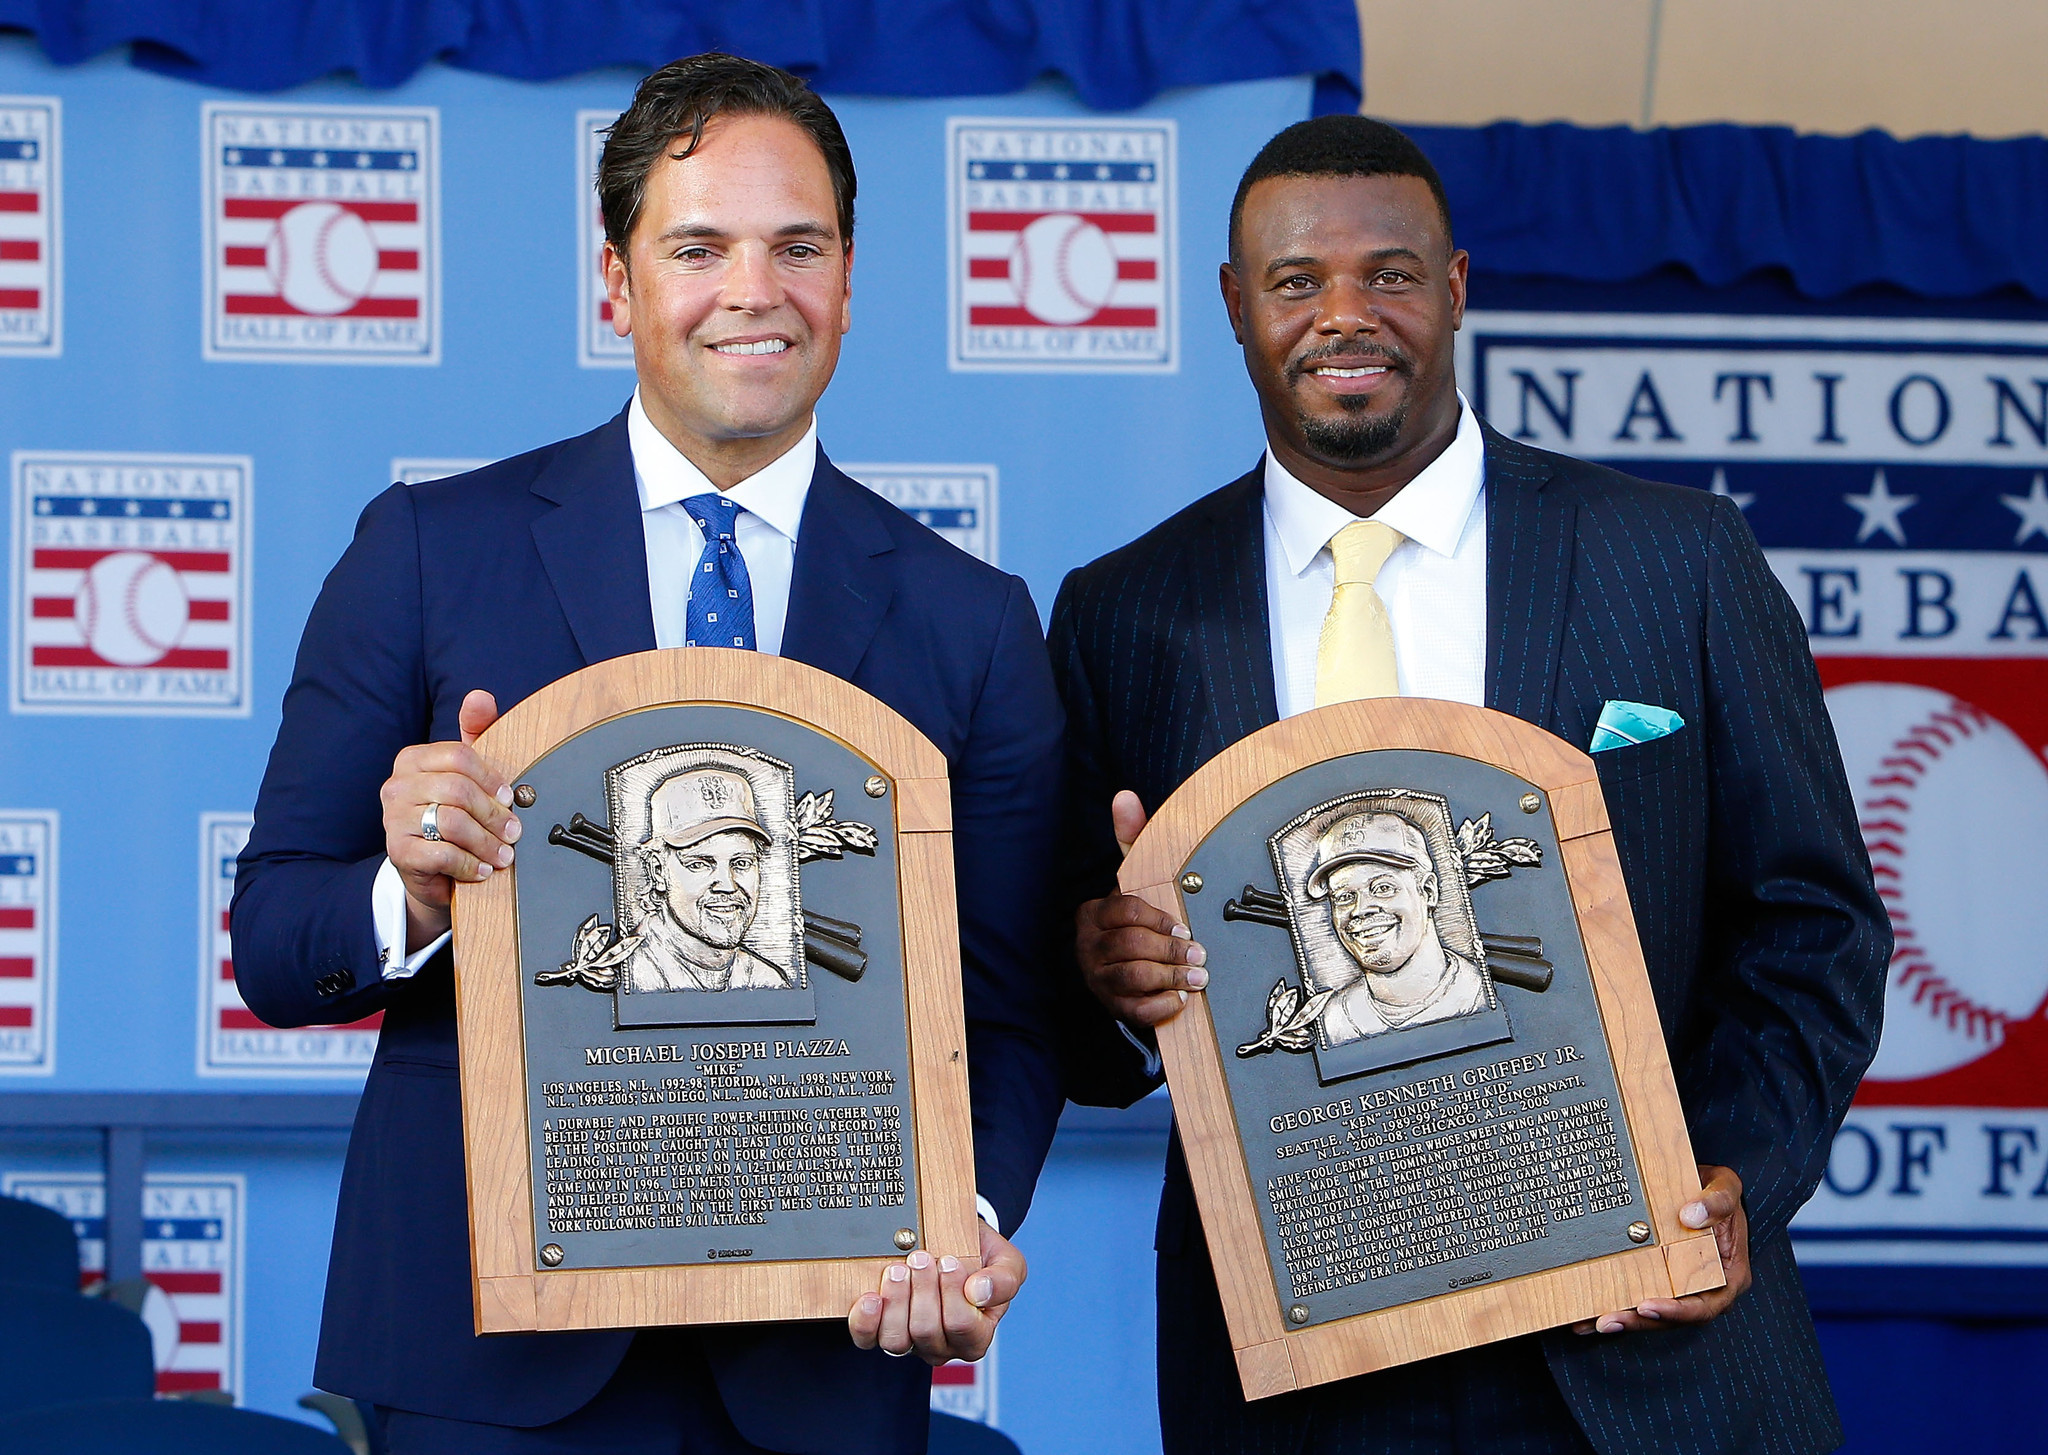 Mike Piazza and Ken Griffey Jr. inducted into Baseball Hall of Fame - Chicago Tribune